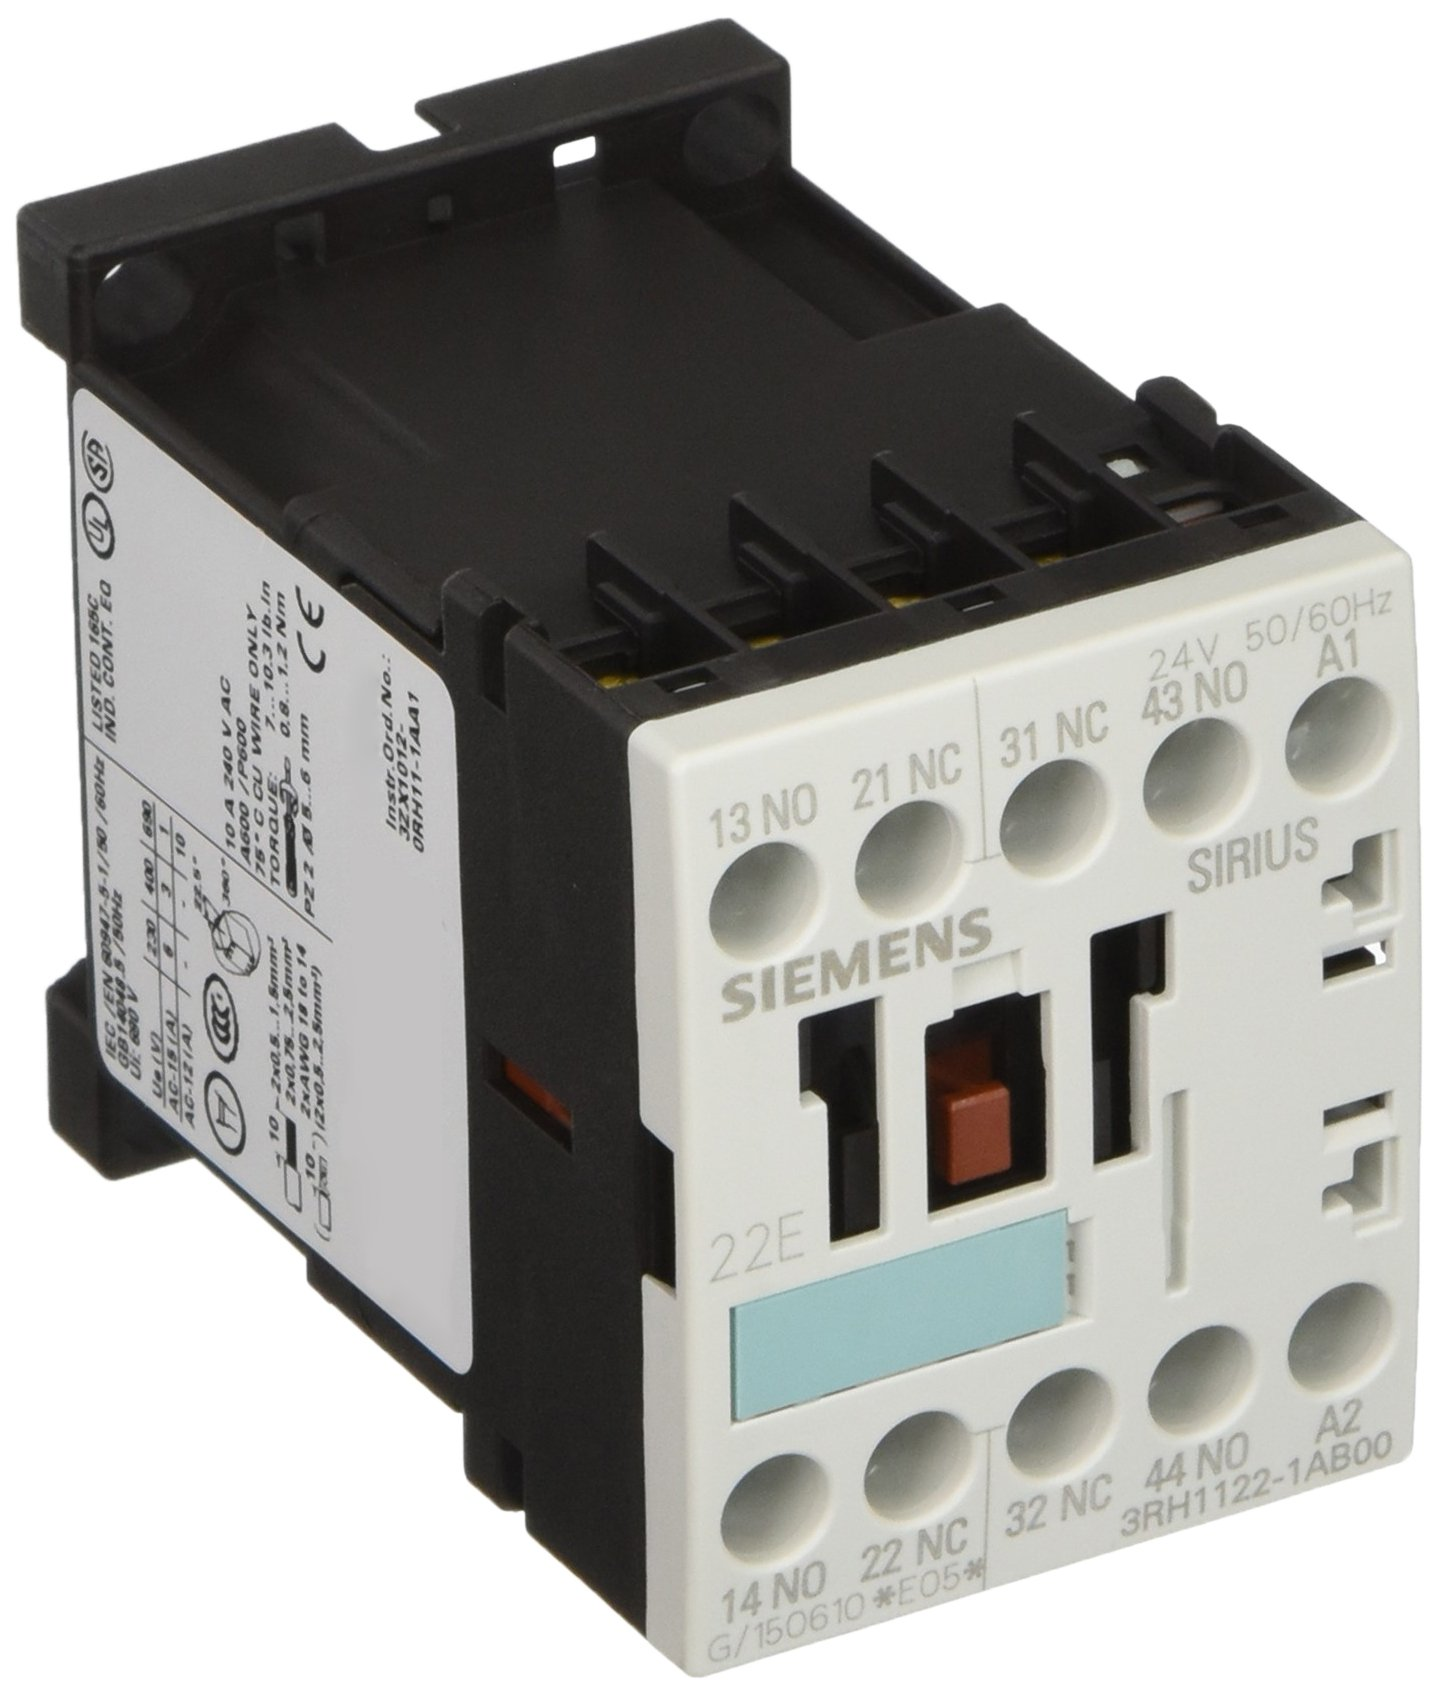 Siemens 3RH11 22-1AB00 Control Relay, Size S00, 35mm Standard Mounting Rail, AC Operation, Screw Connection, 22 E Identification Number, 2 NO + 2 NC Contacts, 24 V 50/60 Hz Control Supply Voltage